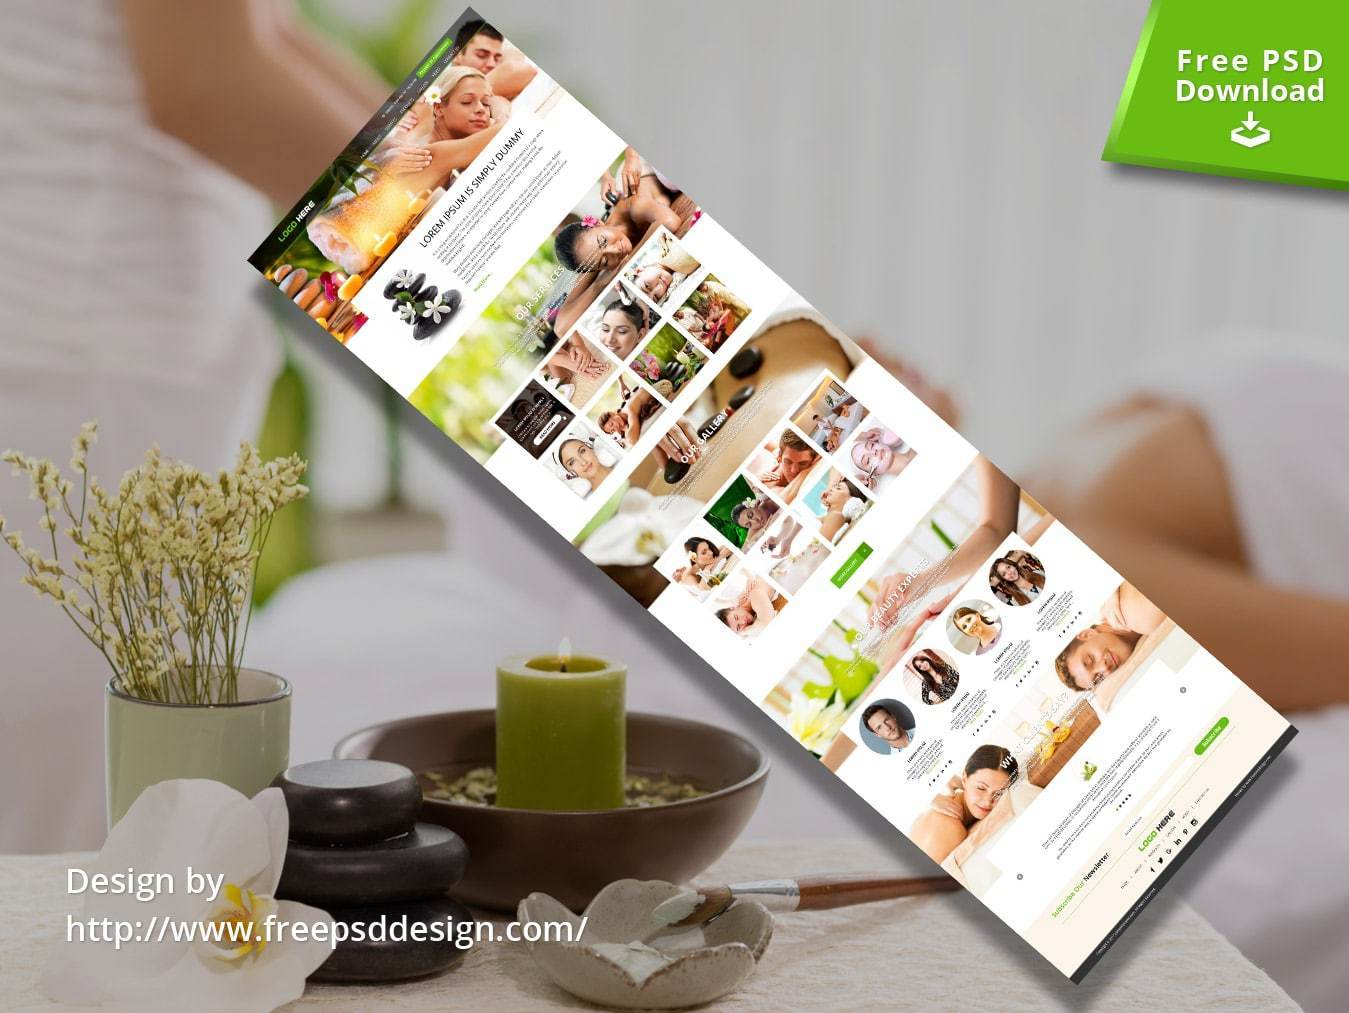 Hair Salon Website Templates Free Download